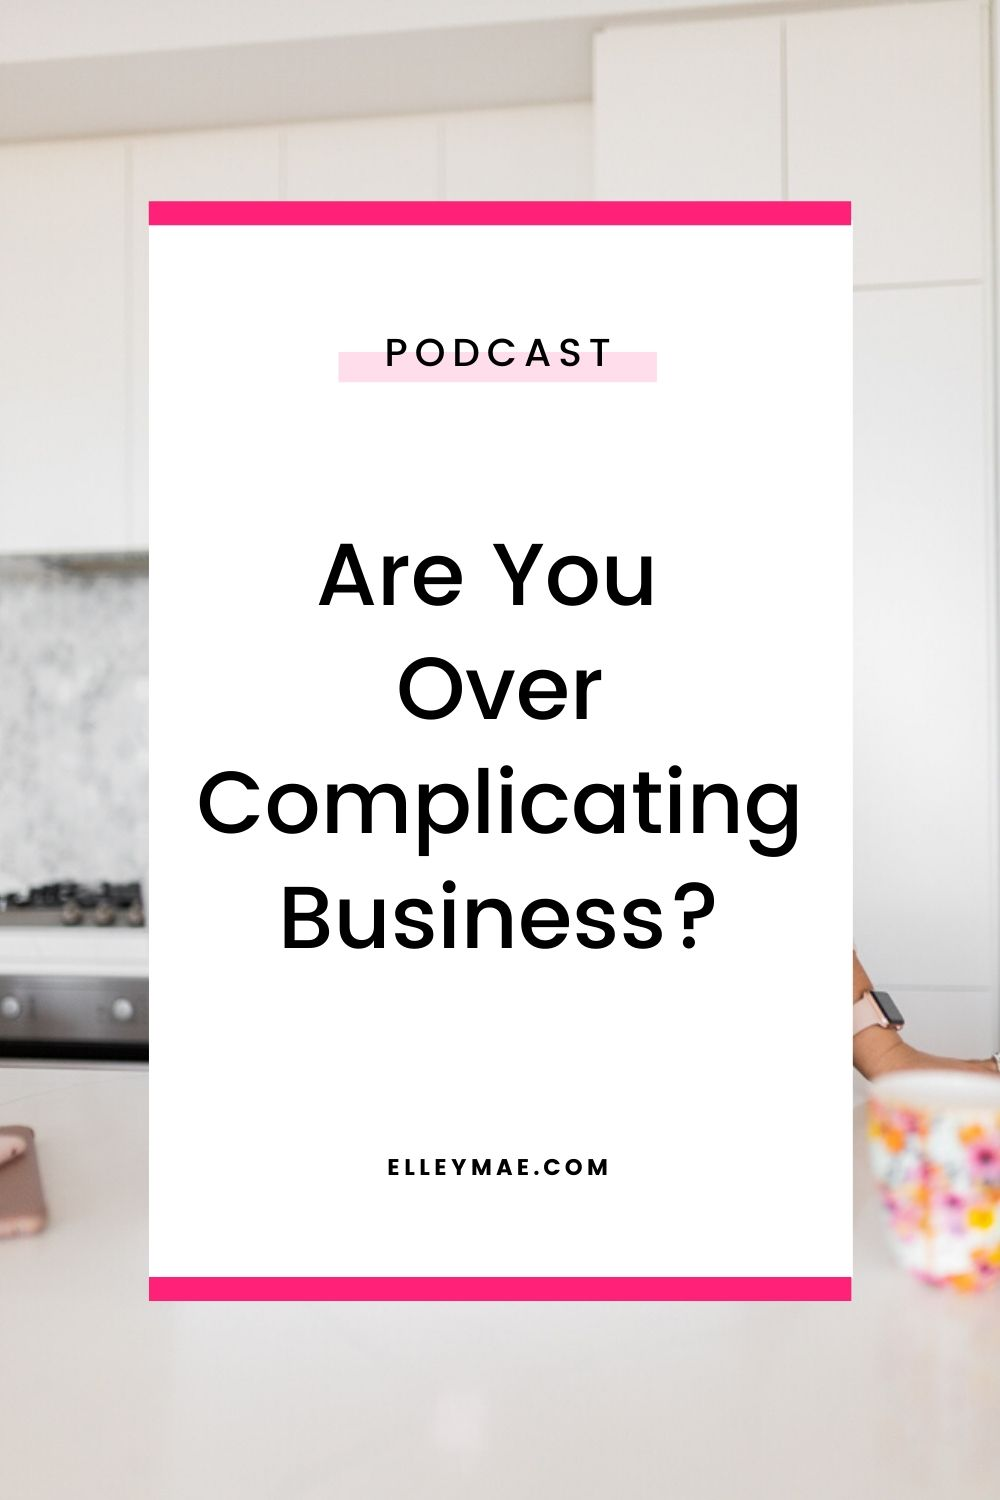 Are You Over Complicating Business?